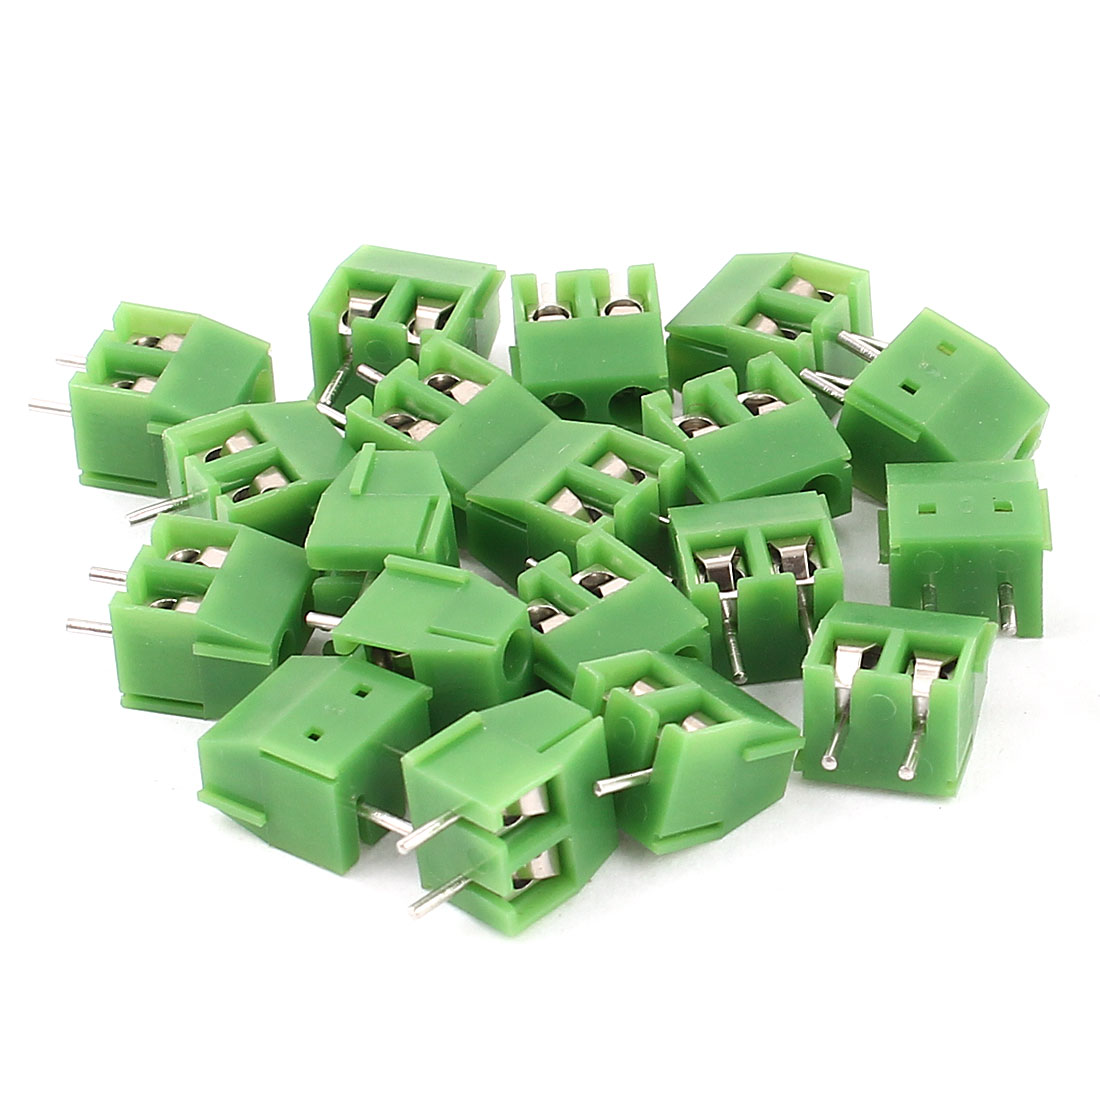 20 Pcs 3.96mm Pitch 2Pin Pluggable Type PCB Screw Terminal Block Connector Green